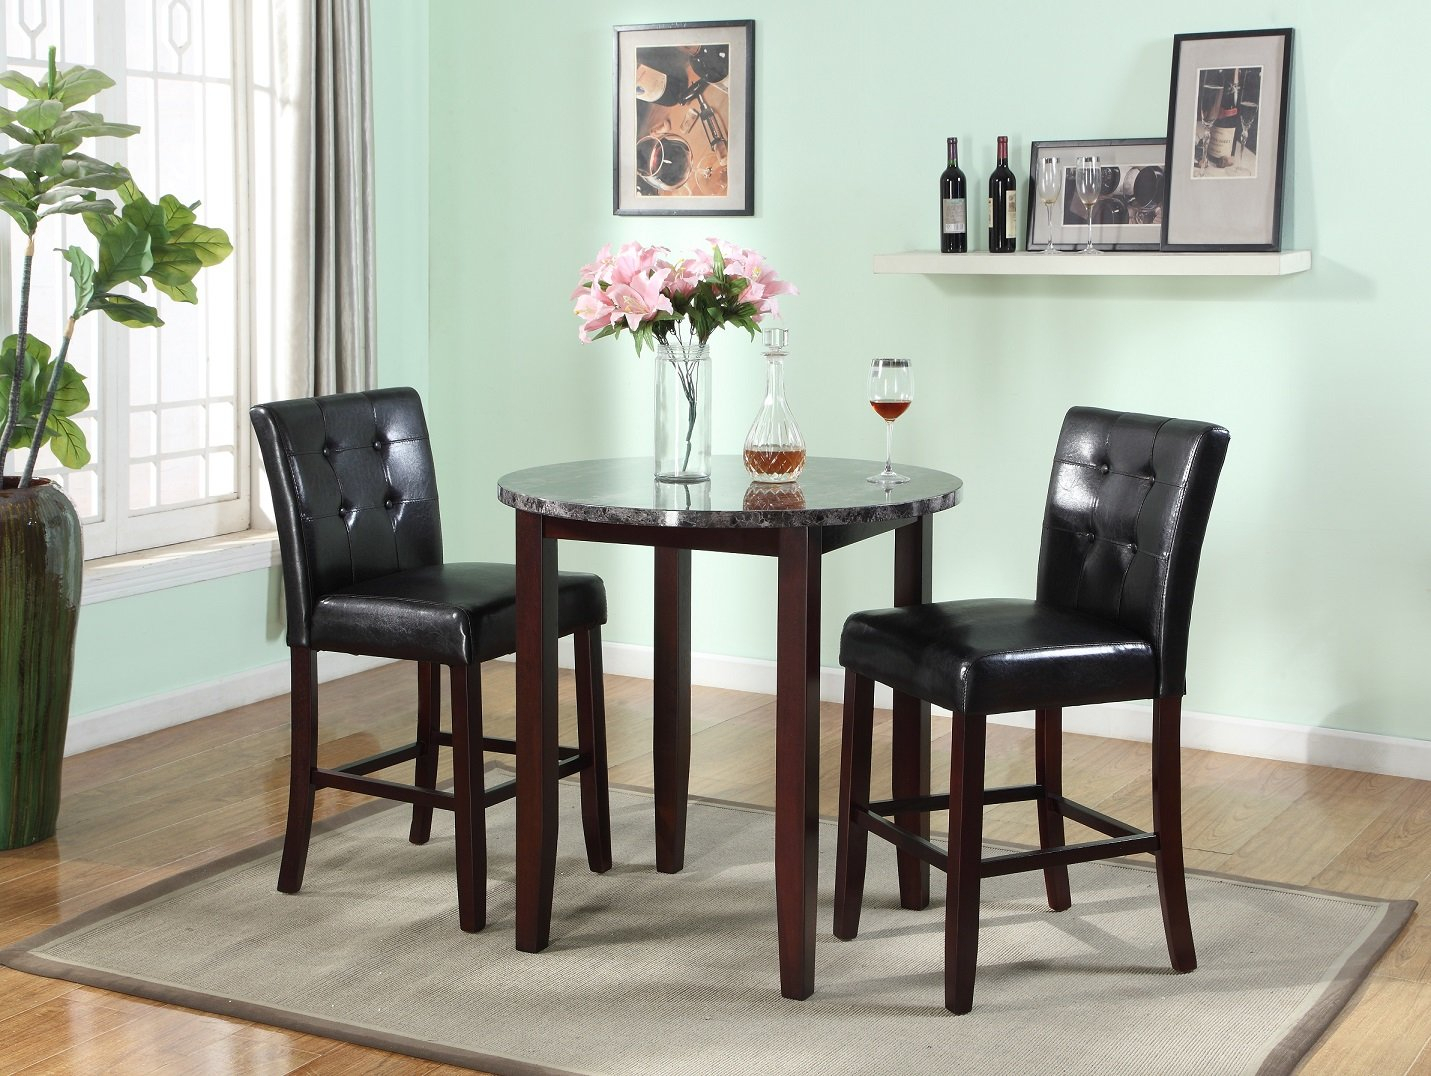 Janmarie 3 Piece Counter Height Dining Set Throughout Best And Newest Mizpah 3 Piece Counter Height Dining Sets (View 7 of 20)